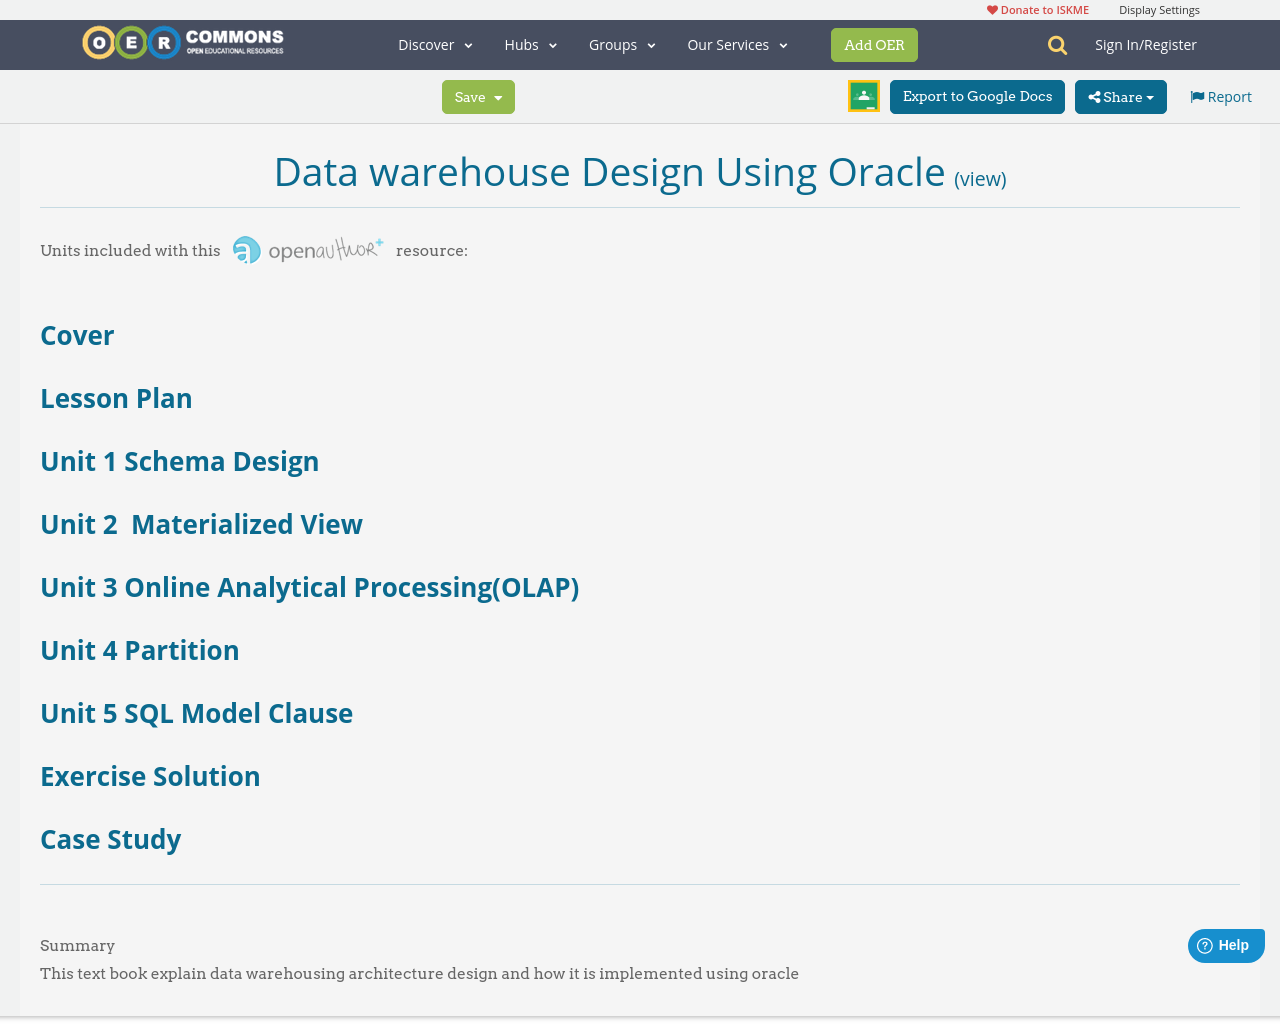 sc 1 st  OER Commons & Data warehouse Design Using Oracle | Unit 4 Partition | OER Commons